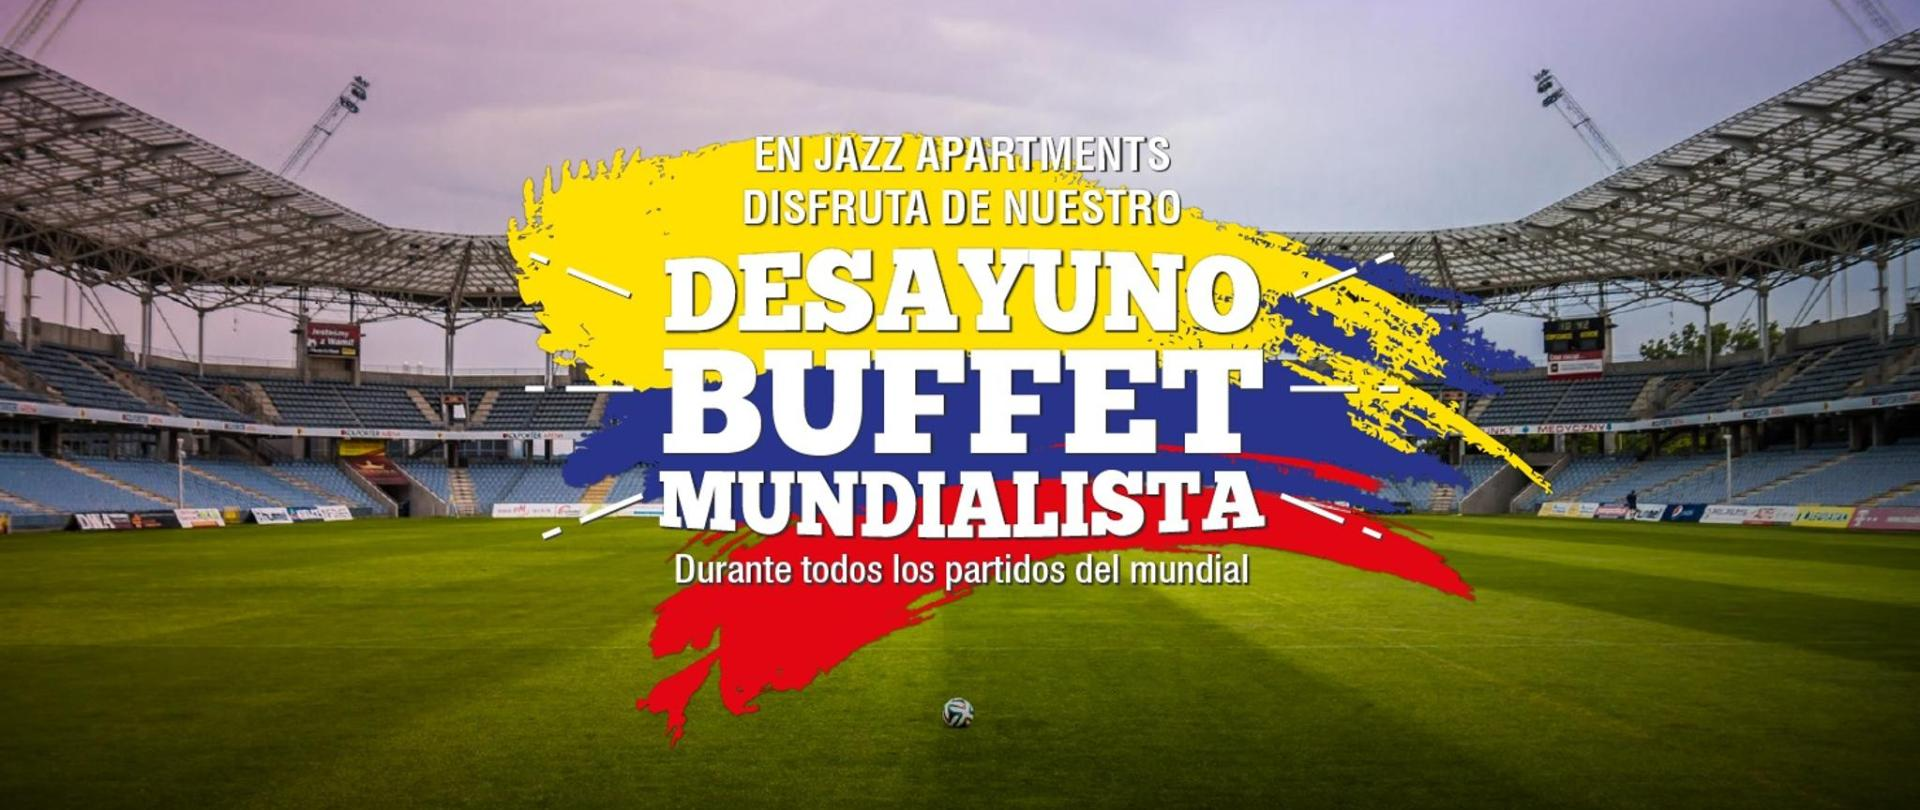 www.jazzapartments.com-mundial-rusia-2018-jazz.jpg